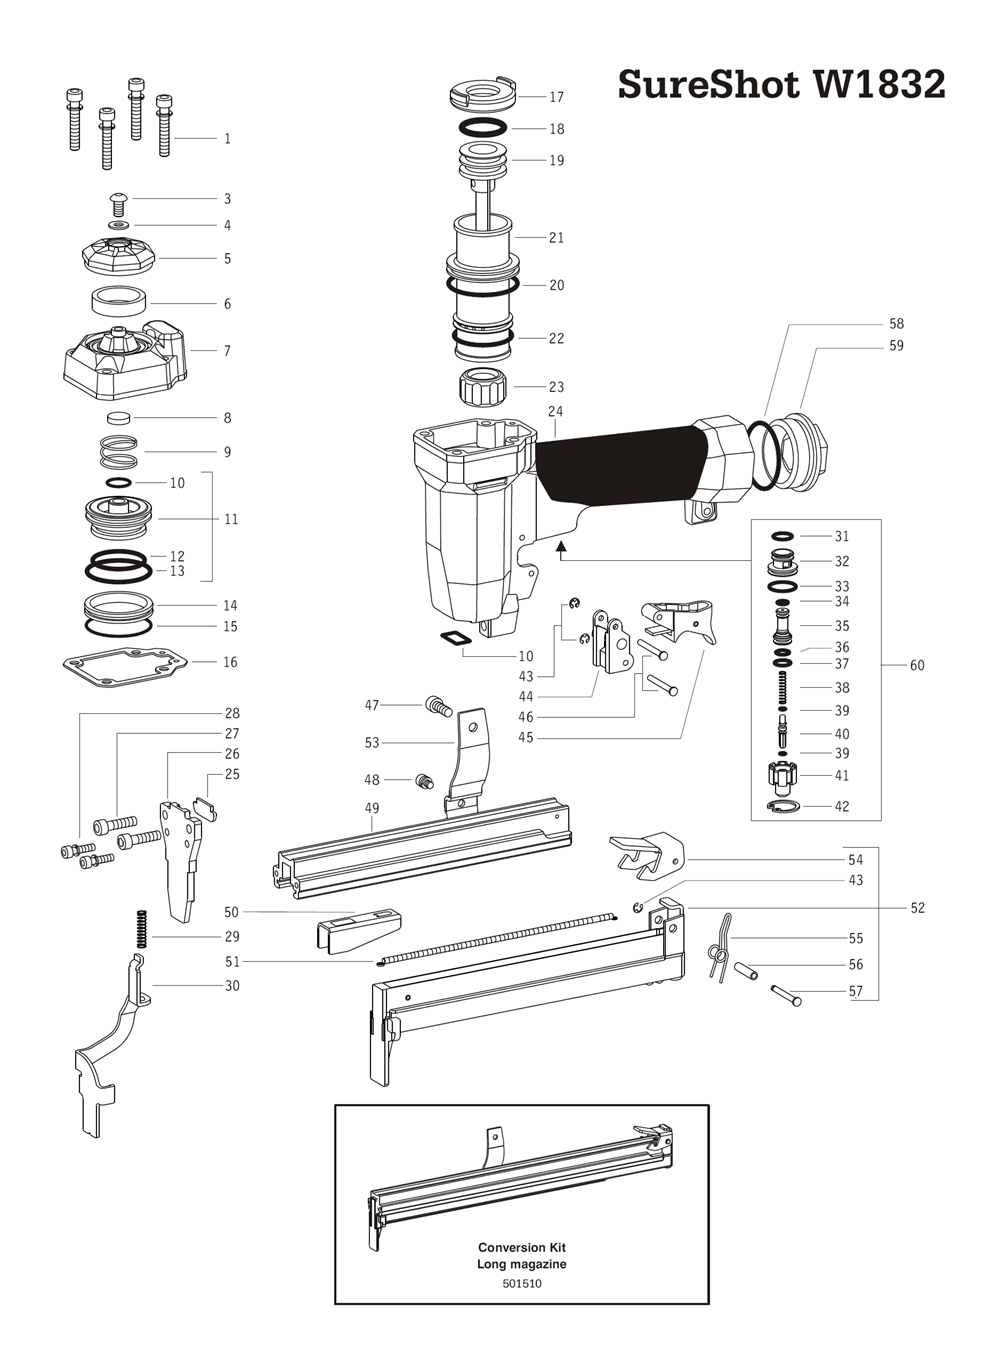 New Yale All Wiring Diagrams And Service Manuals Pdf Full Set Version moreover P Front Steering  ponent Diagram With Part Numbers X as well  besides Saturdayparts A E C F Efb Ba Cb Ff A Grande besides Bobcat Service Skid Steer Service Manual. on cart parts diagram